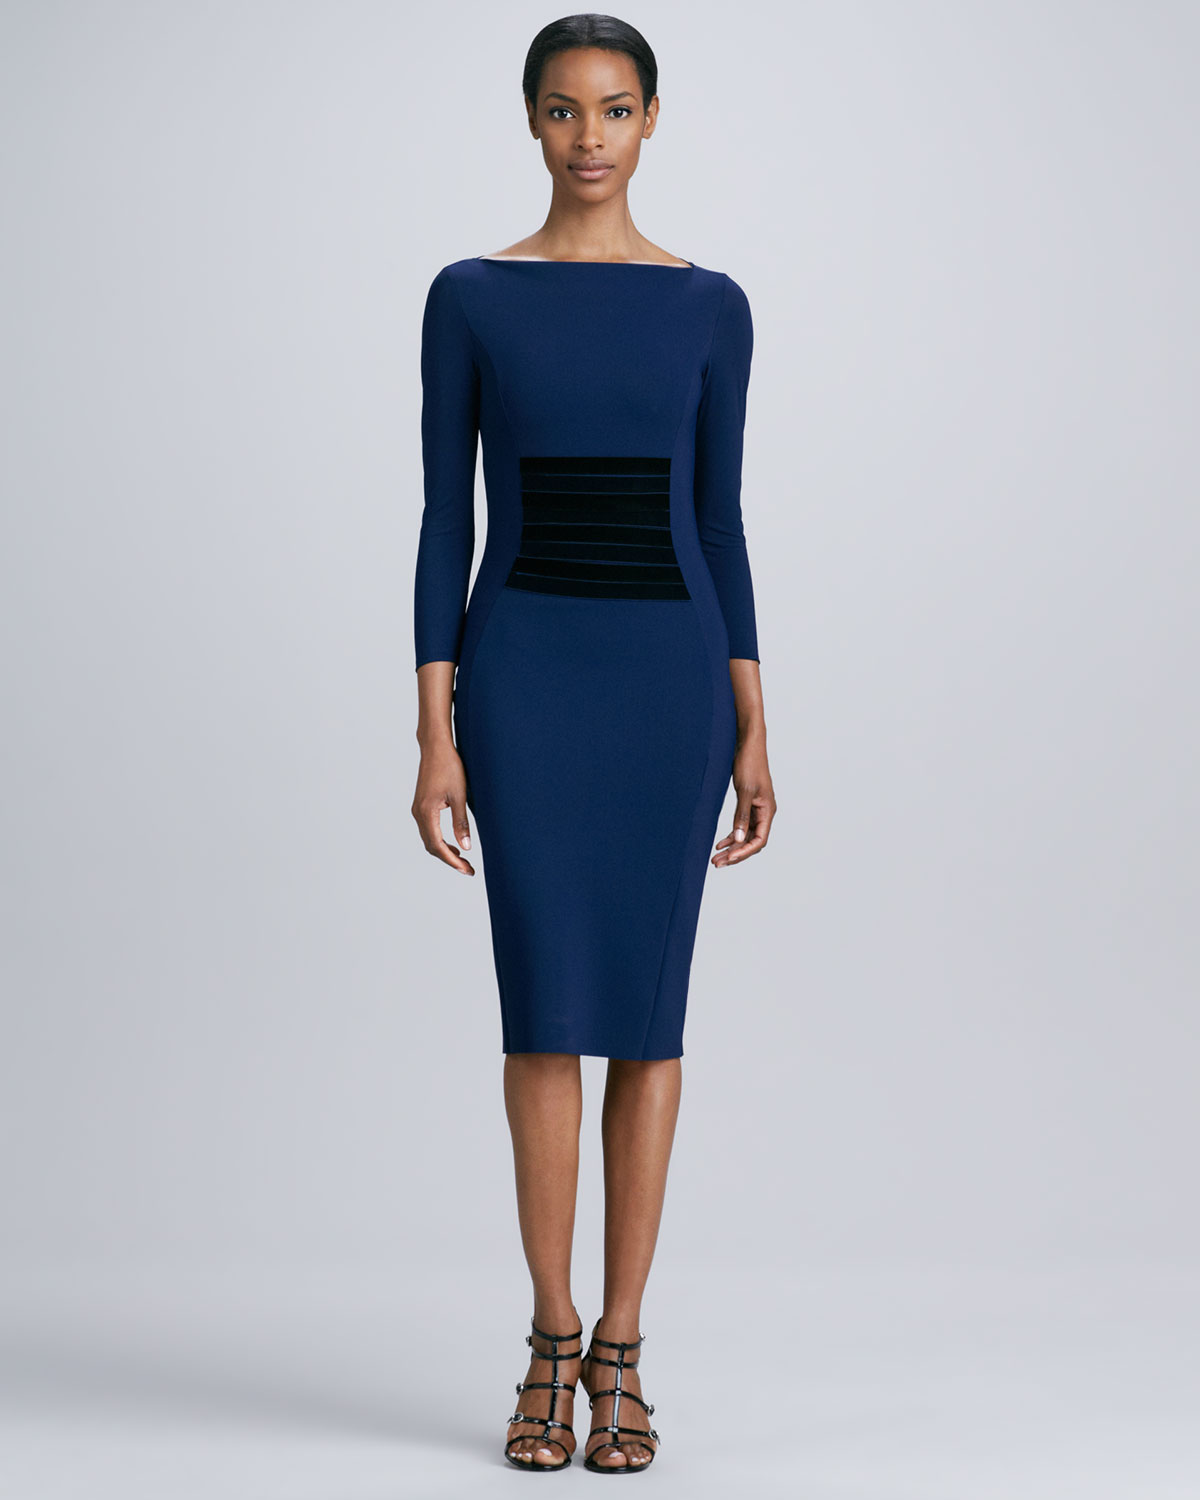 Chiara Boni The Most Popular Dress In America: La Petite Robe Di Chiara Boni Rafaella Paneledwaist Jersey